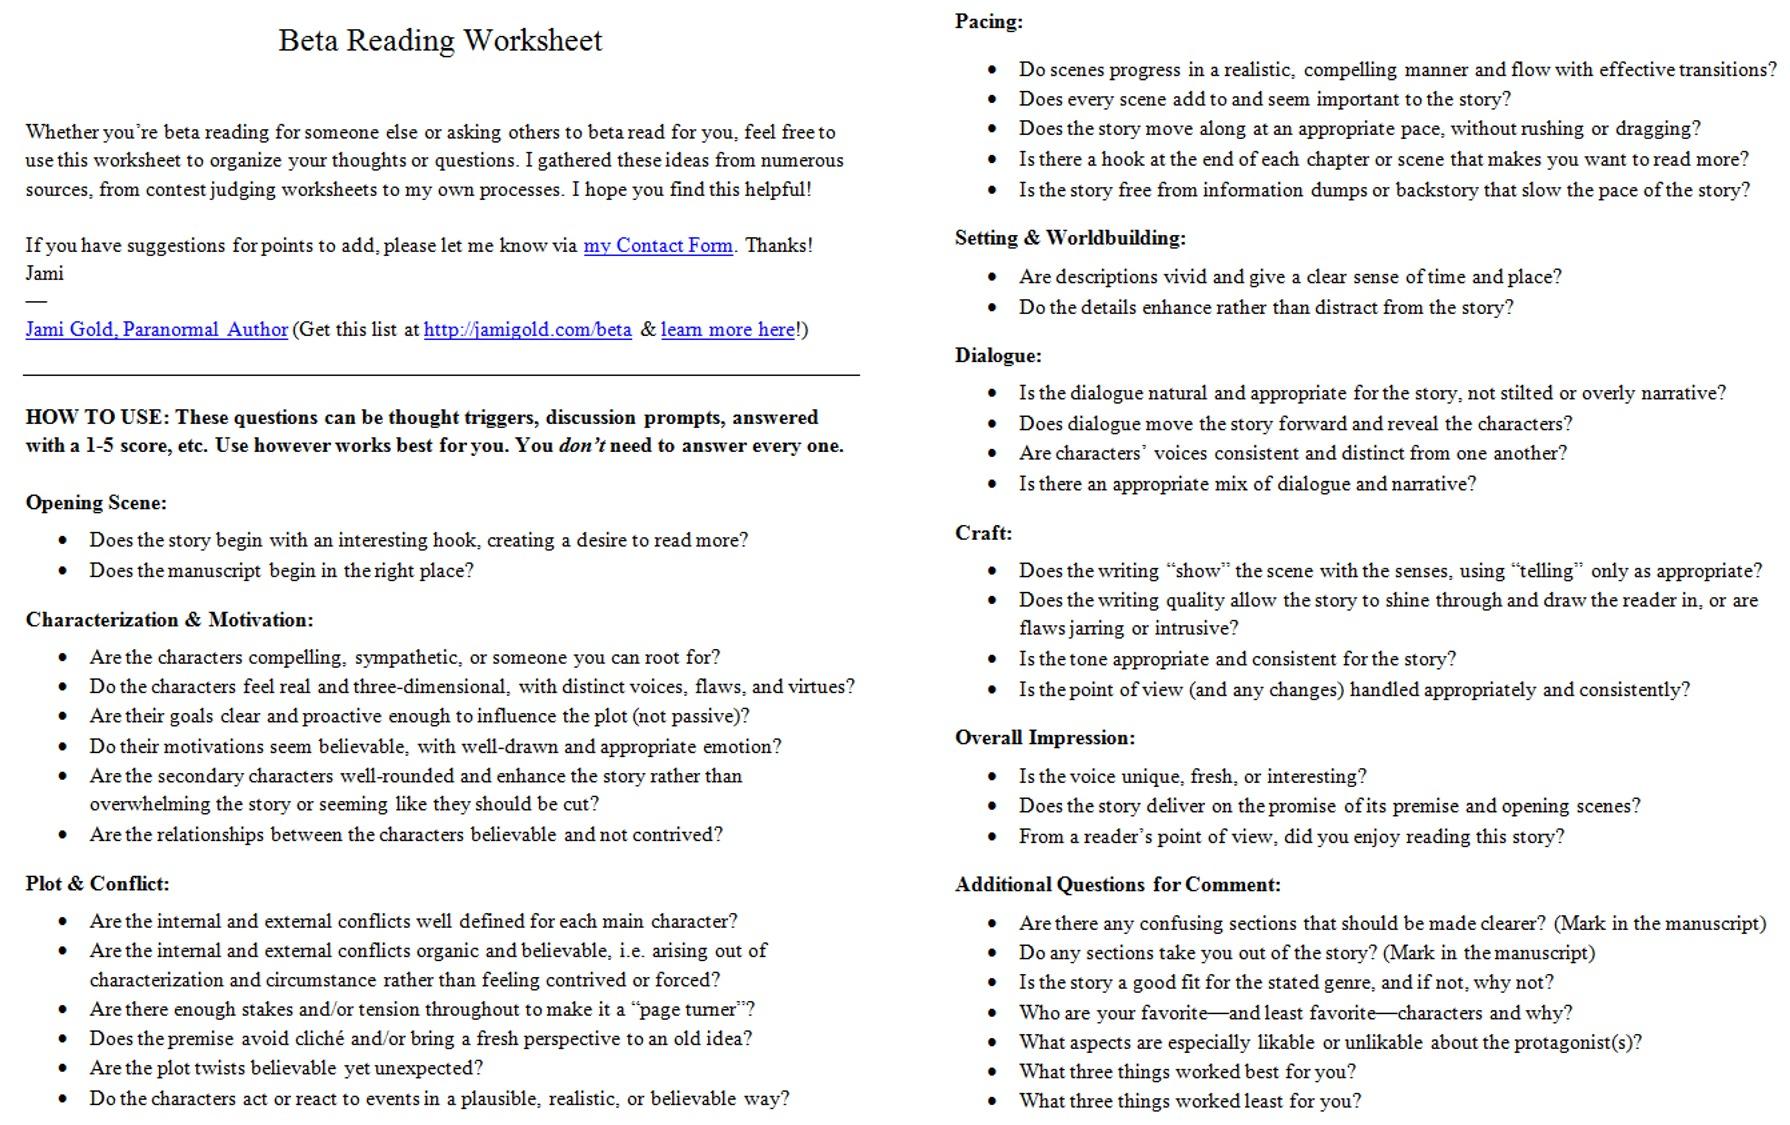 Aldiablosus  Stunning Worksheets For Writers  Jami Gold Paranormal Author With Luxury Screen Shot Of The Twopage Beta Reading Worksheet With Enchanting Time Concepts Worksheets Also Reading Strategy Worksheets In Addition Cut And Paste Halloween Worksheets And Freefall Worksheet As Well As Graph Worksheets For Rd Grade Additionally Fun Music Theory Worksheets From Jamigoldcom With Aldiablosus  Luxury Worksheets For Writers  Jami Gold Paranormal Author With Enchanting Screen Shot Of The Twopage Beta Reading Worksheet And Stunning Time Concepts Worksheets Also Reading Strategy Worksheets In Addition Cut And Paste Halloween Worksheets From Jamigoldcom